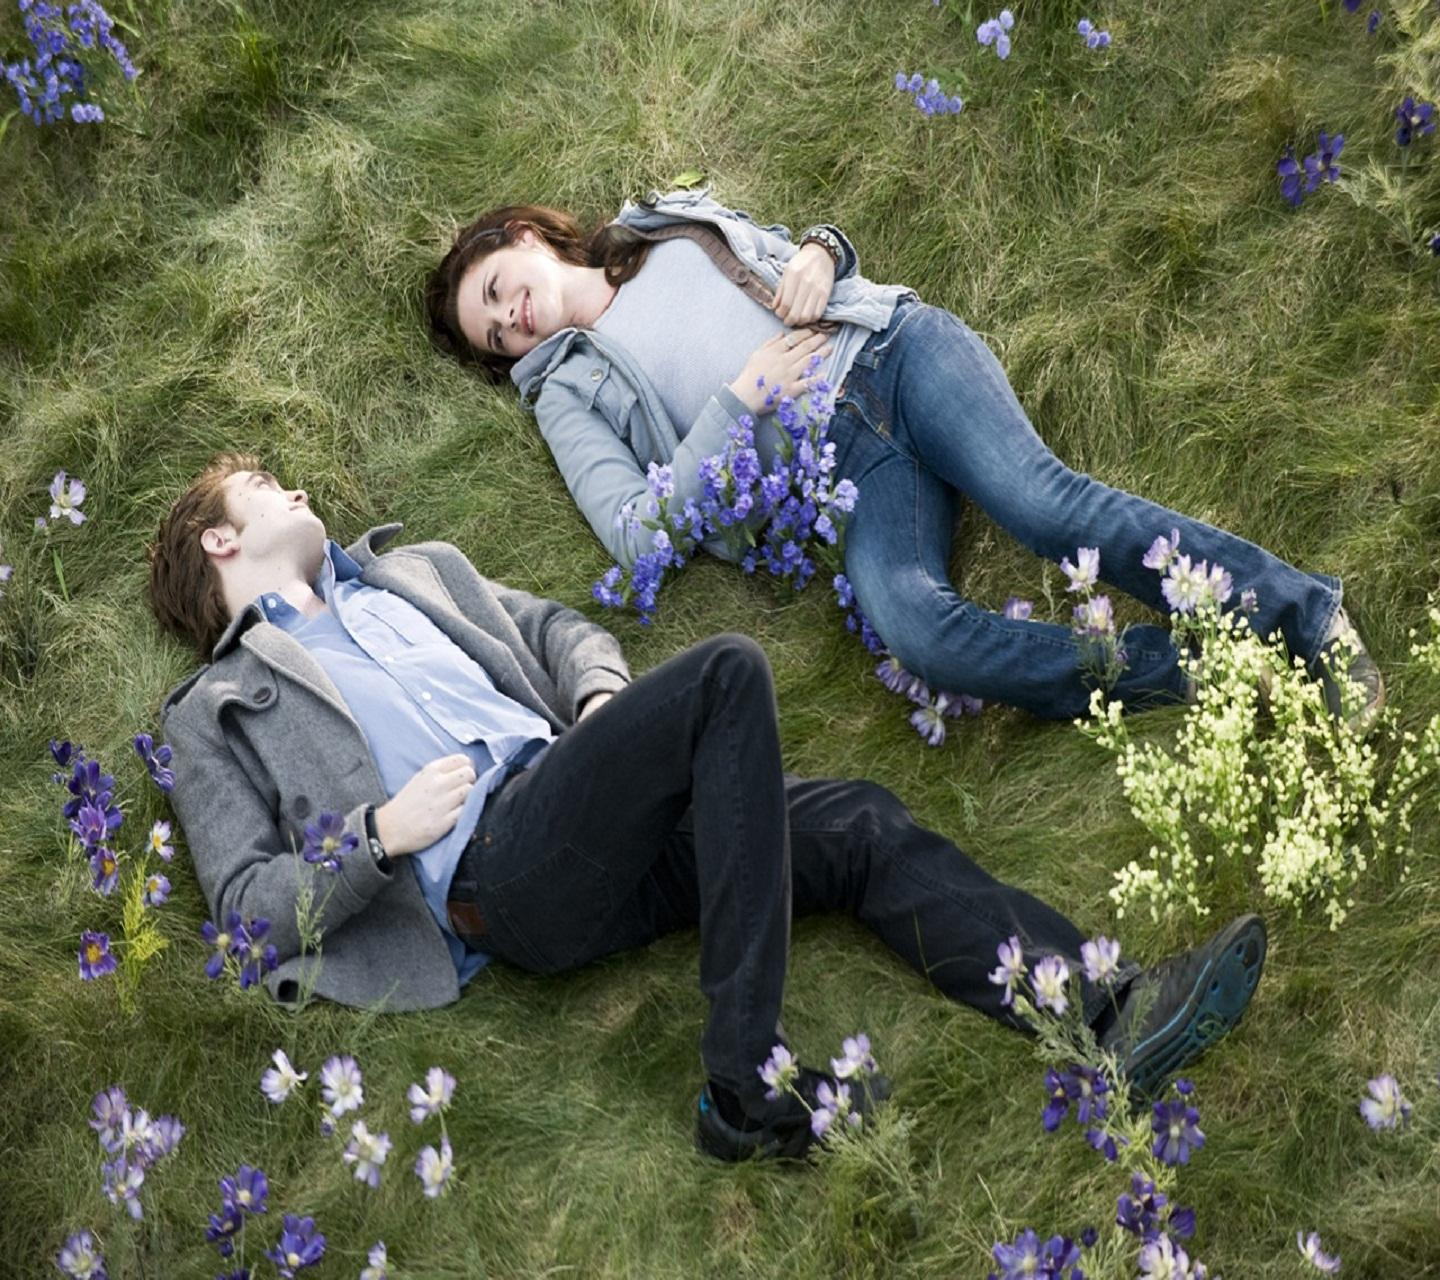 Edward and bella hd wallpaper for mobile